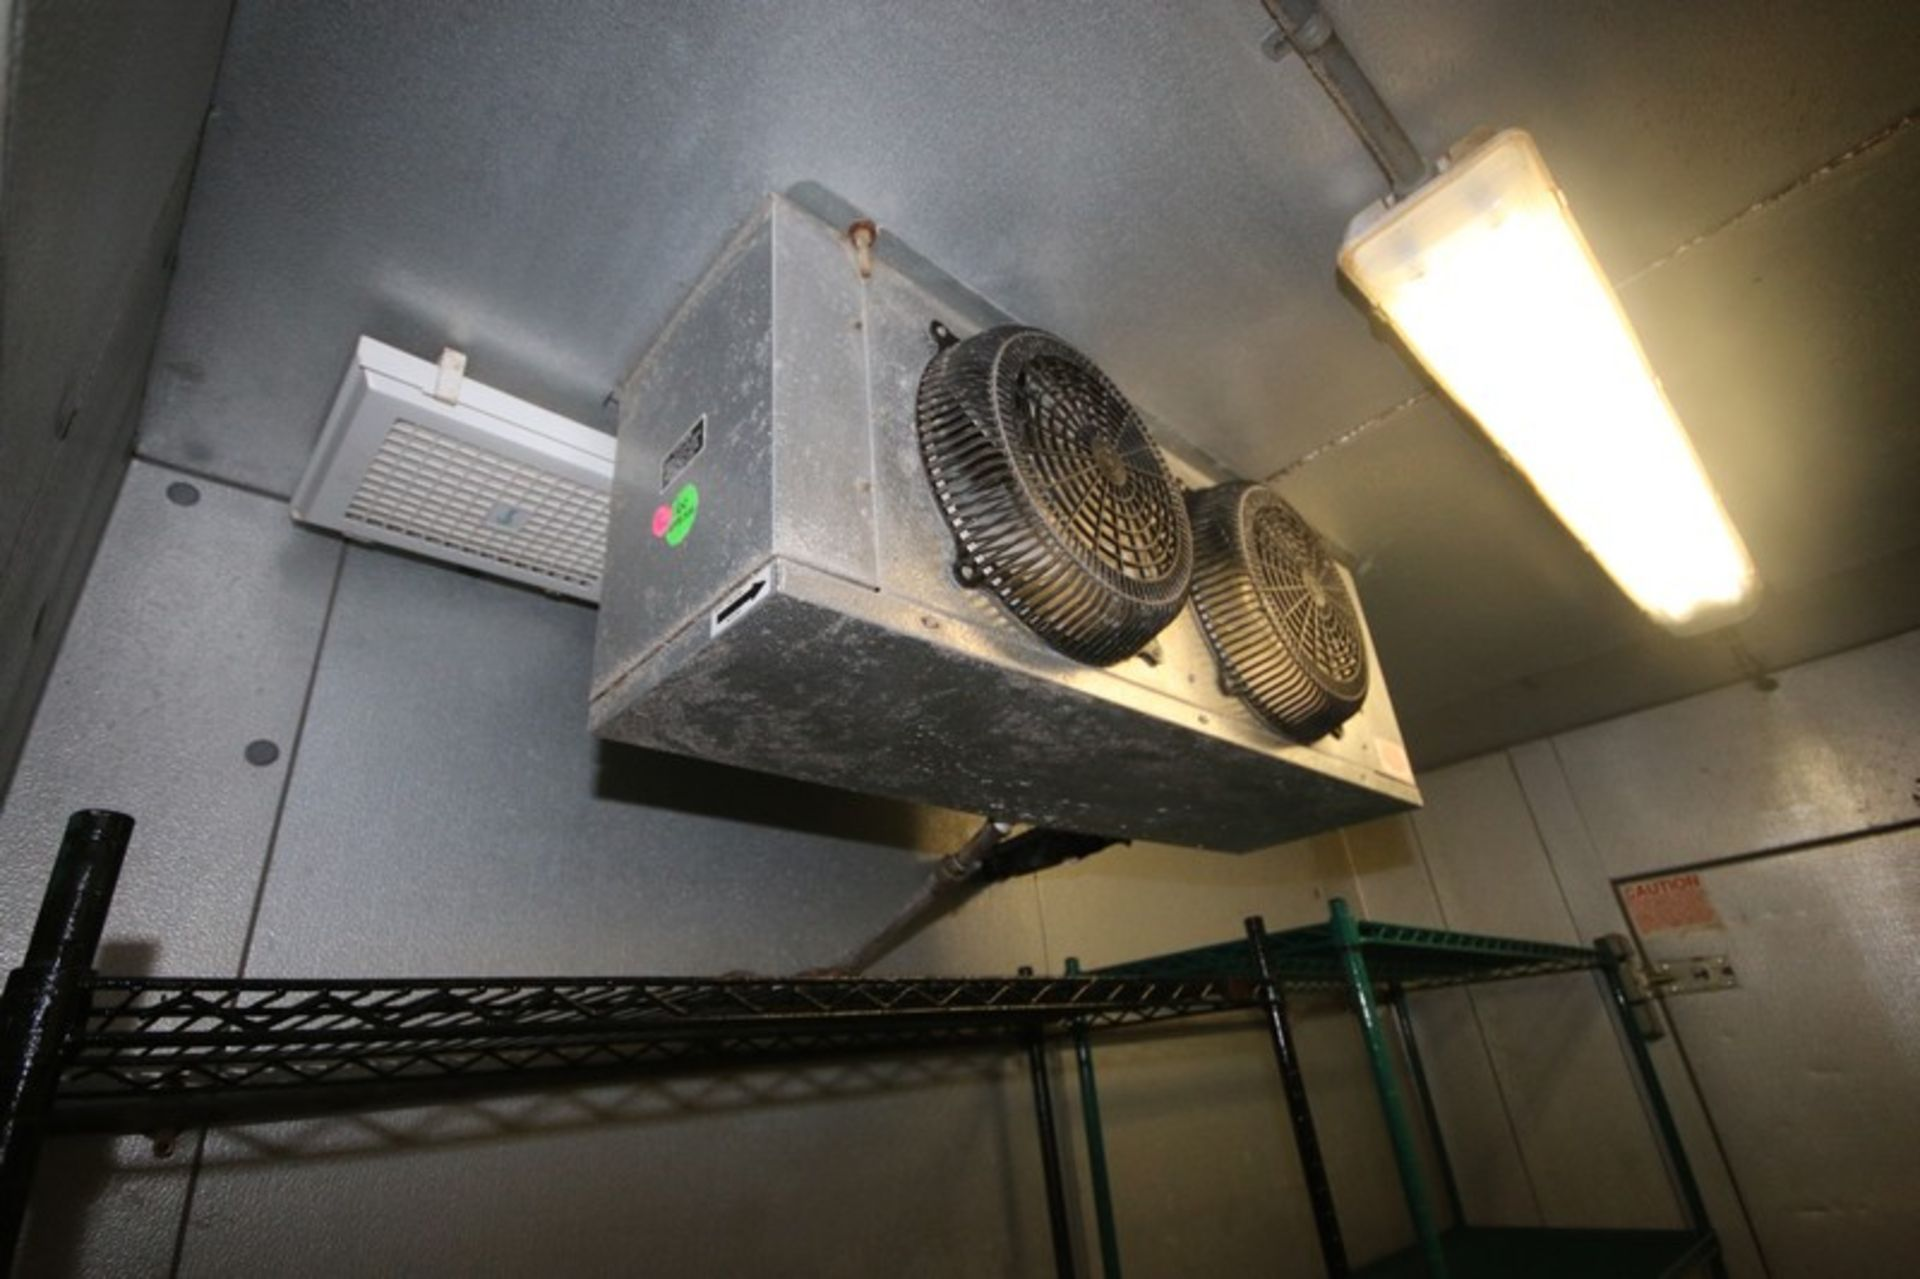 Harford Dual Compartment Walk-In Cooler & Freezer, S/N 410021576 & 410021576, Compartment Sizes: - Image 7 of 18